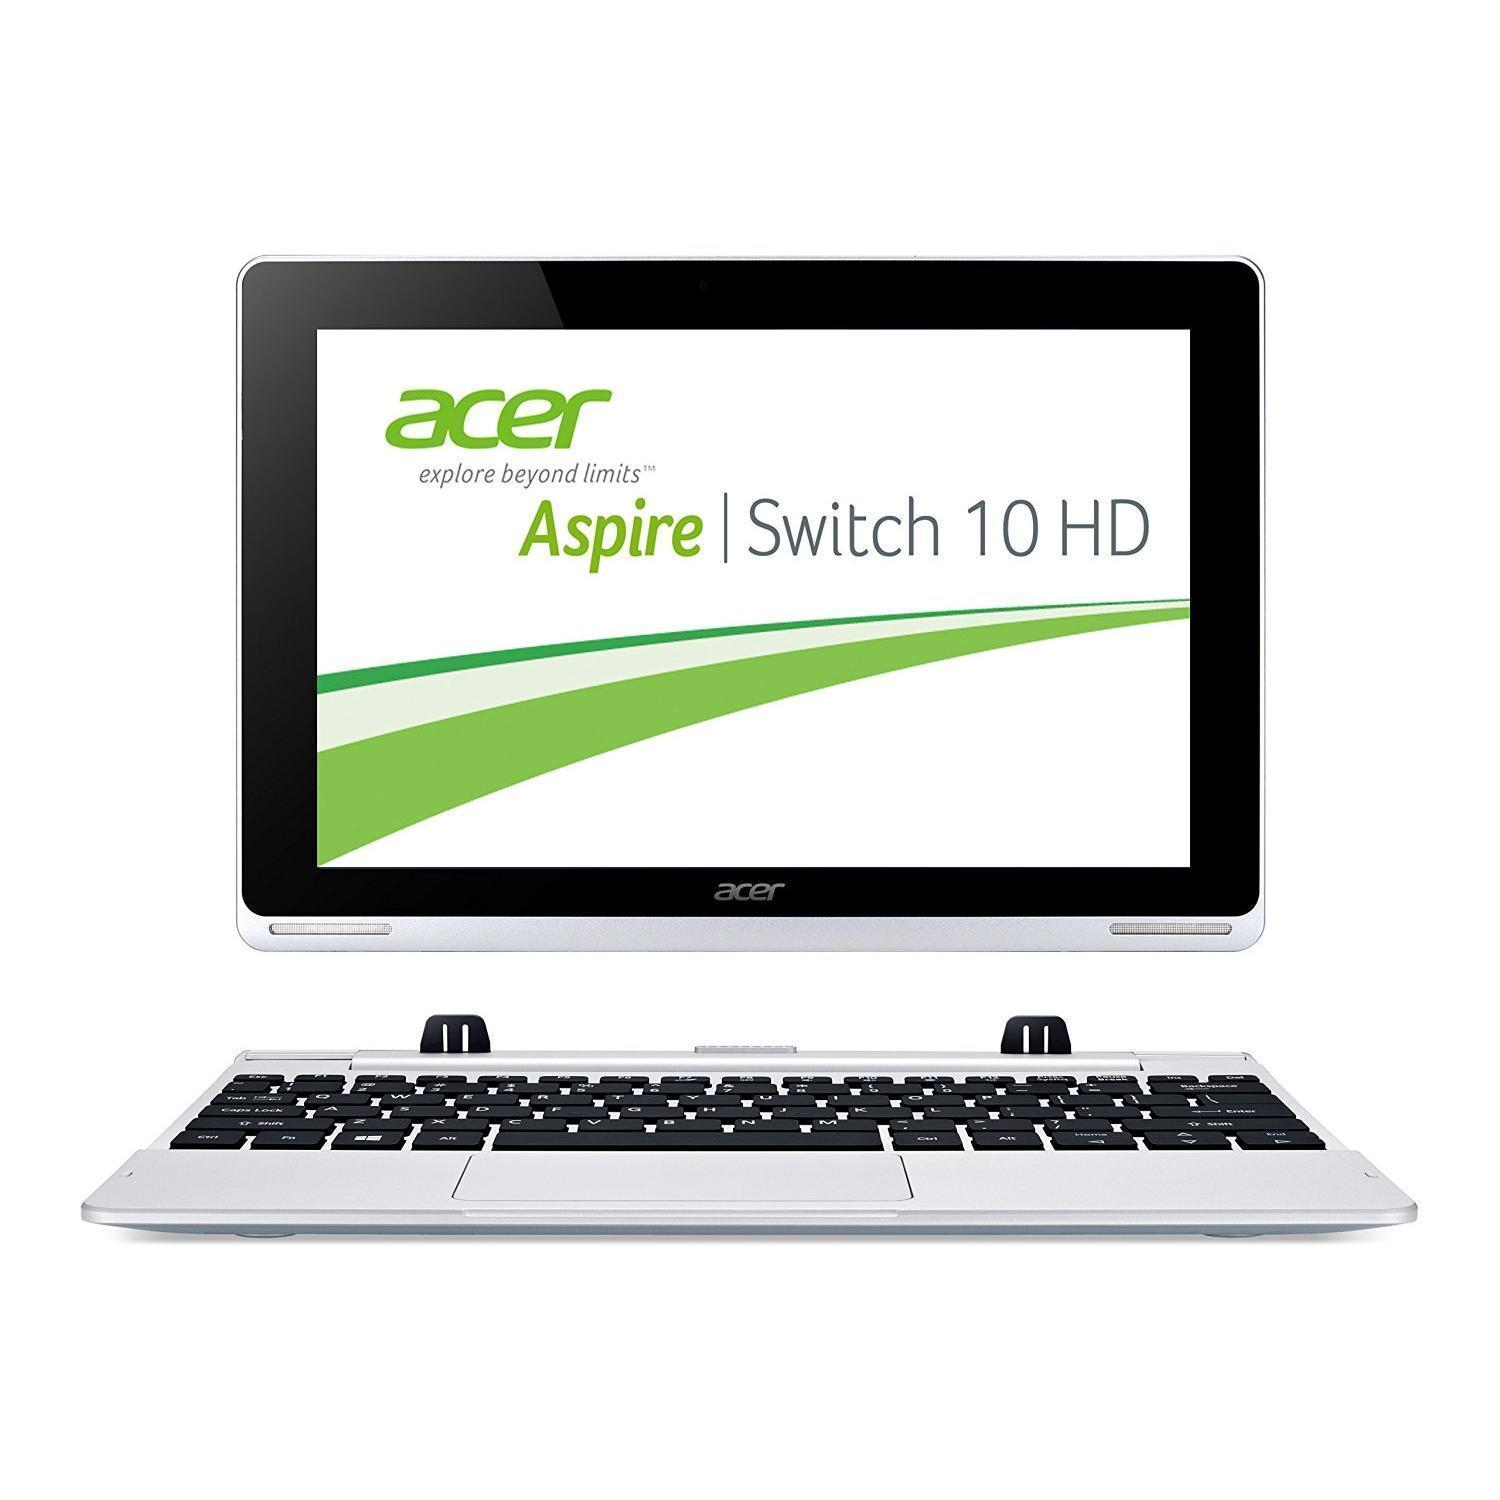 "Acer Aspire Switch 10 V 10,1"" Atom x5-Z8300 4x 1.44 GHz  - HDD 32 GB - RAM 2 GB"